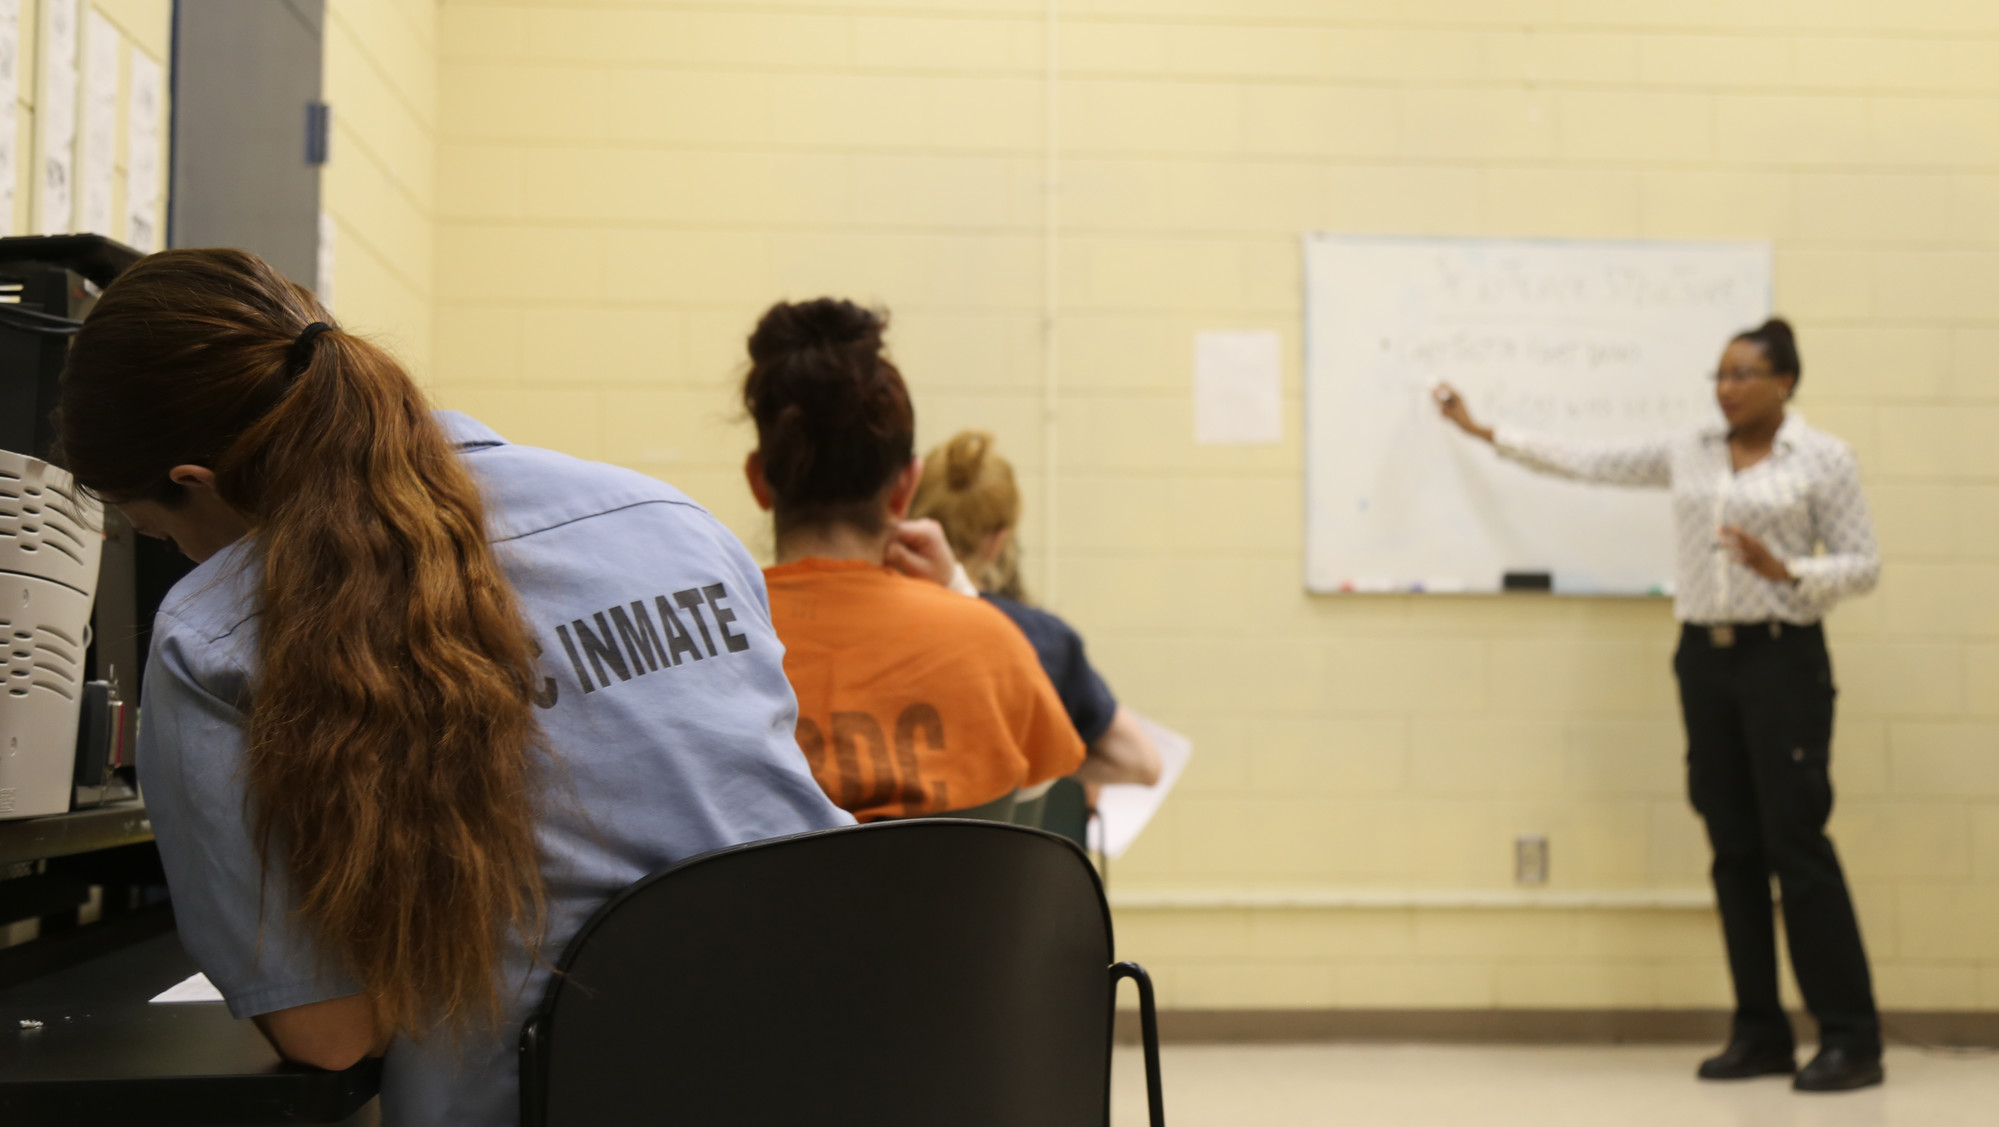 A few inmates at Sumter-Lee Regional Detention Center are making the most of the time by strengthening their education with courses offered by Sumter County Adult Education.